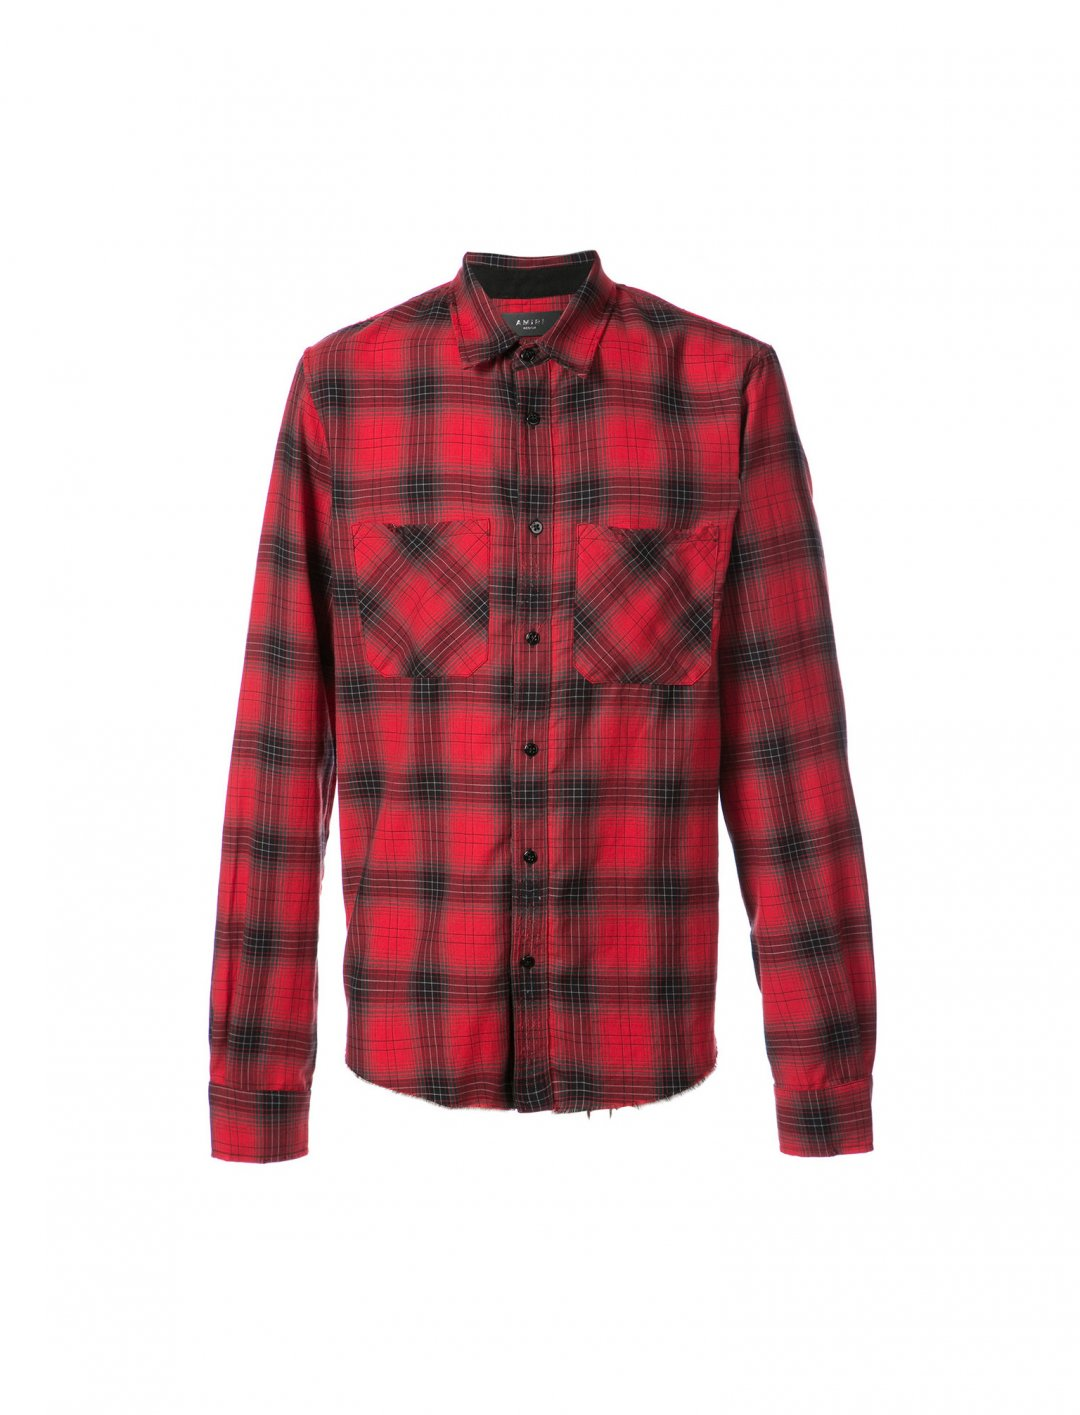 "Justin Timberlake's Raw Hem Shirt {""id"":5,""product_section_id"":1,""name"":""Clothing"",""order"":5} Amiri"